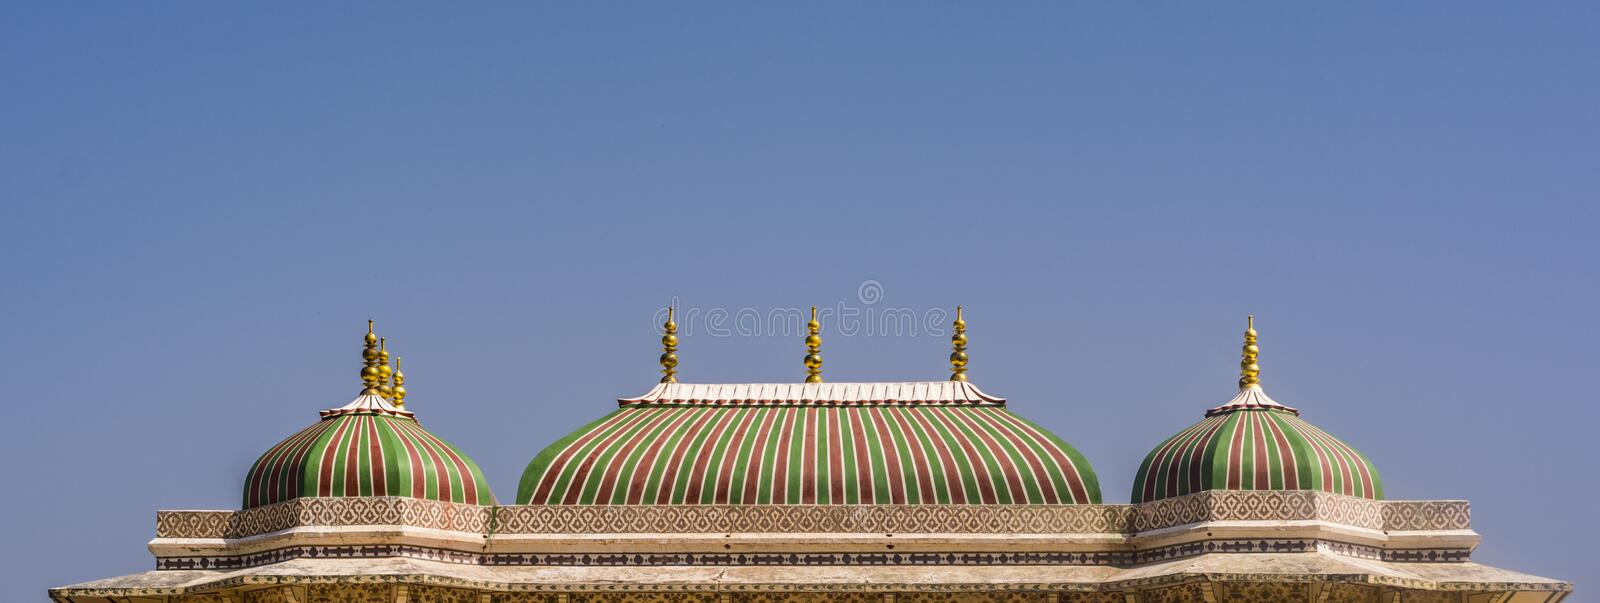 Banner: City palace Jaipur - Colourful Towers stock images